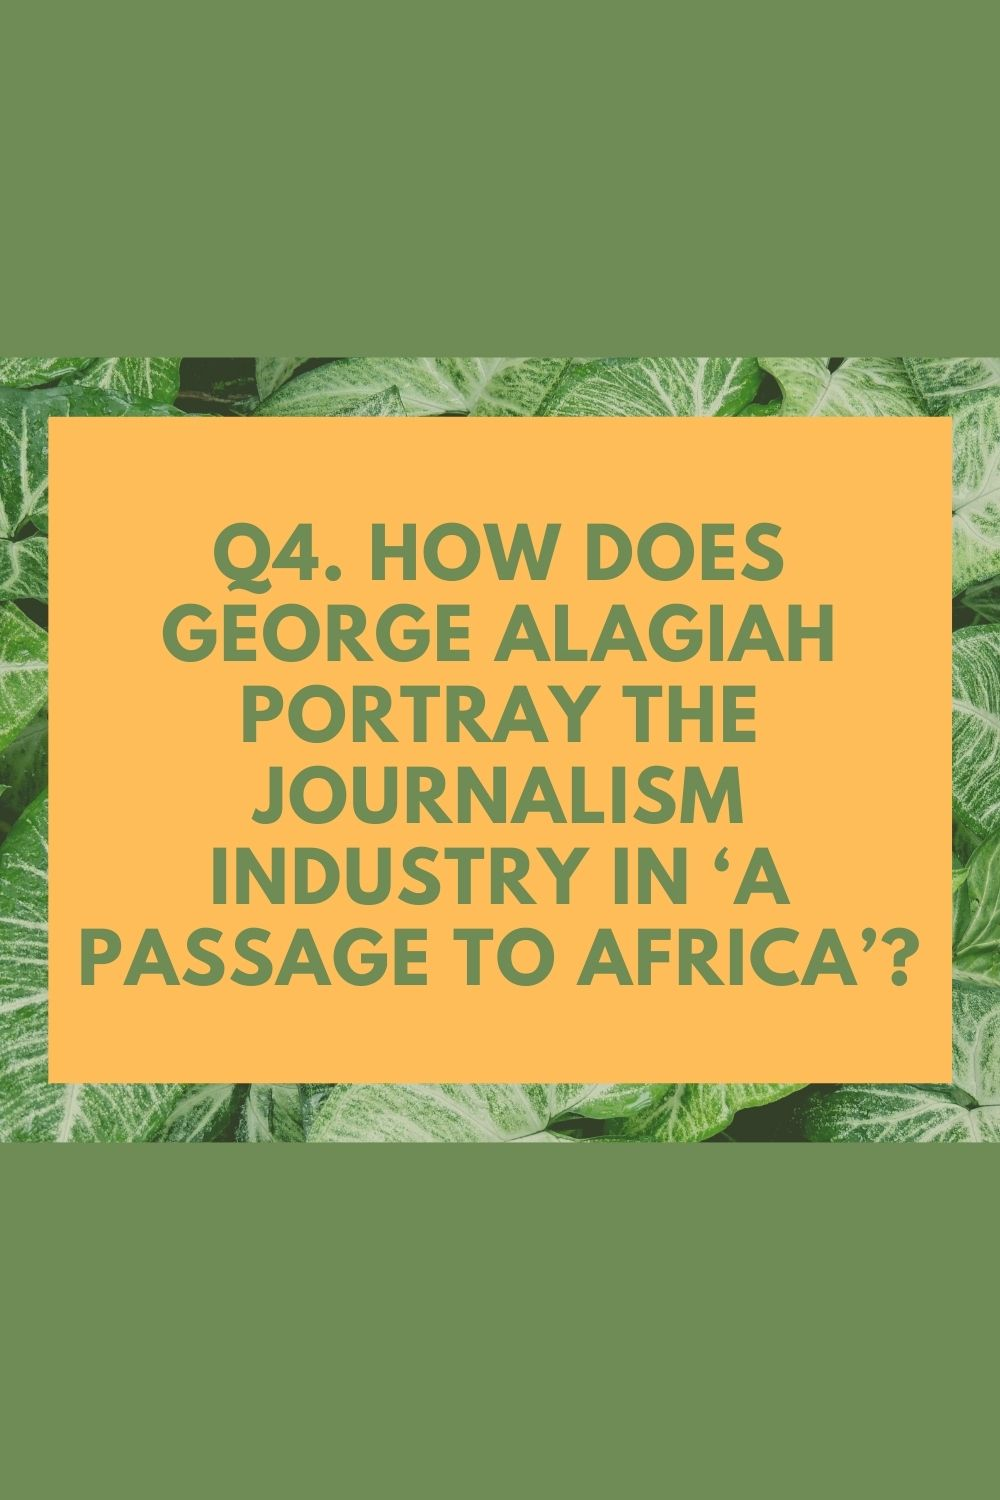 A Passage To Africa By George Alagiah Analysi And Free Essay Sample In 2021 Question About African American History Child